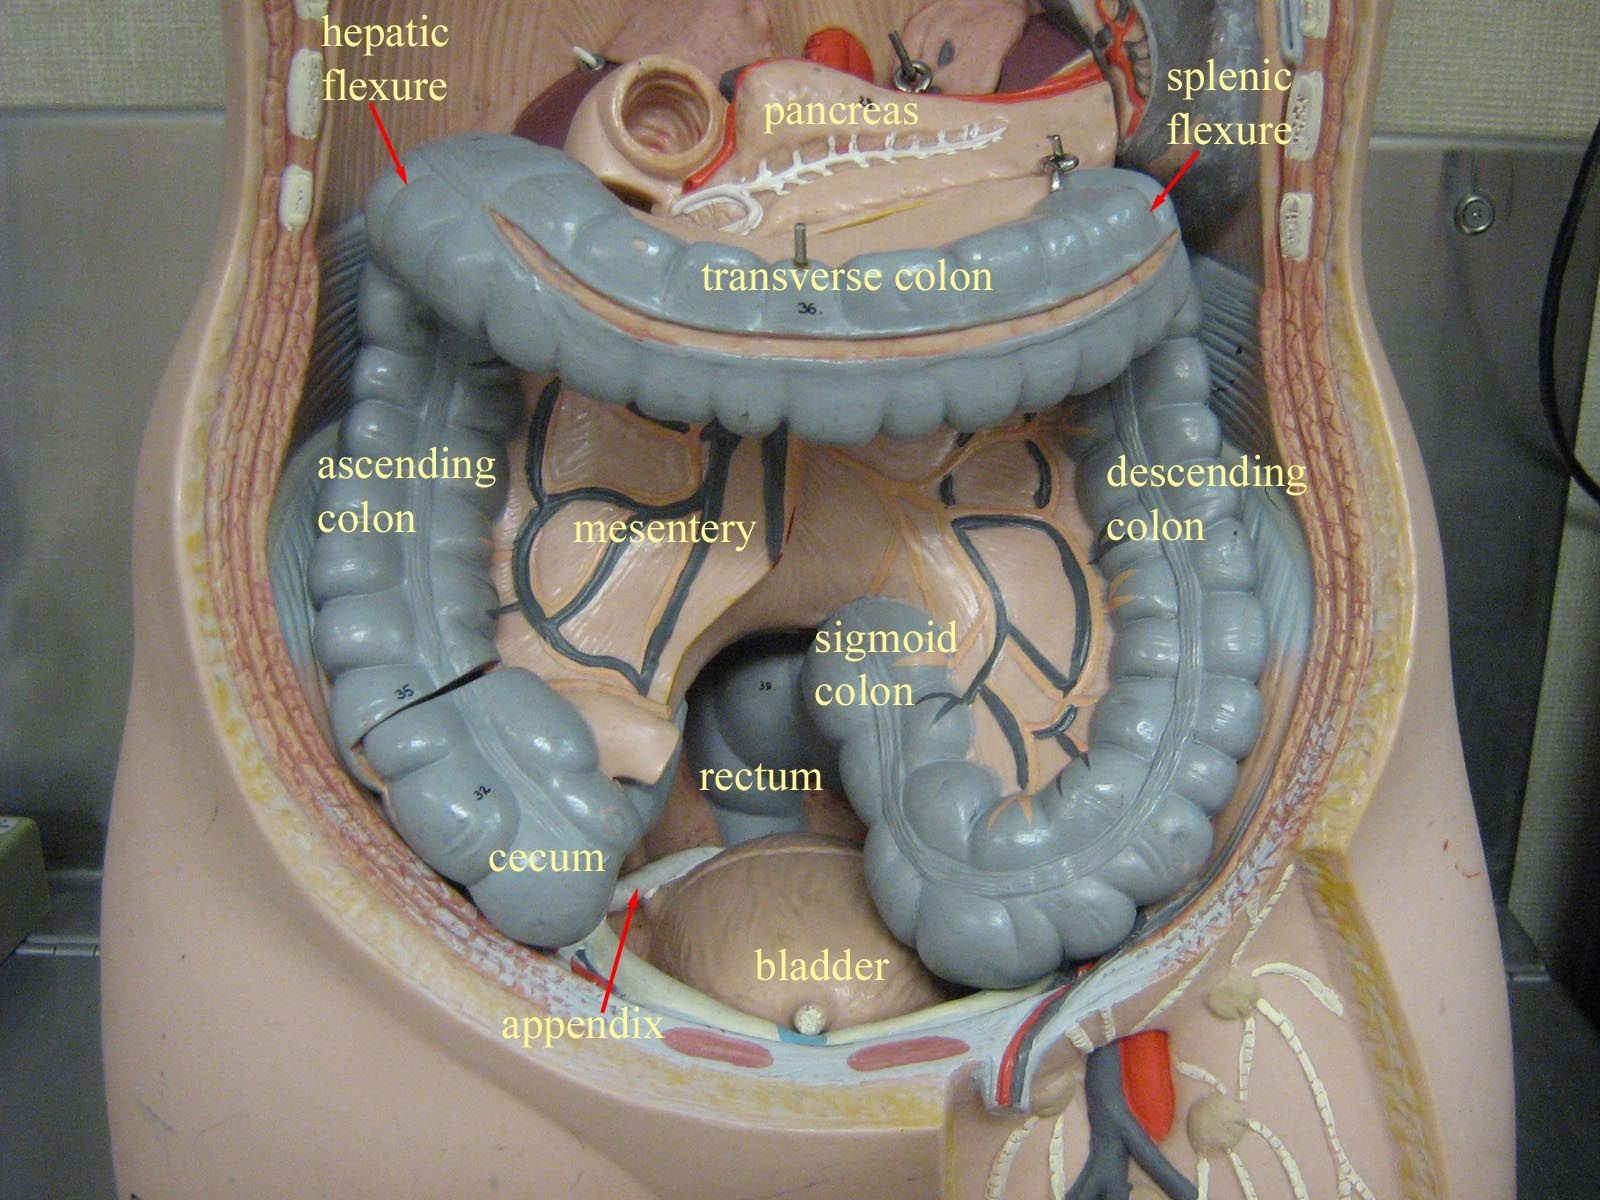 Abdominal Cavity No Liver Stomach Small Intestine Model Stem